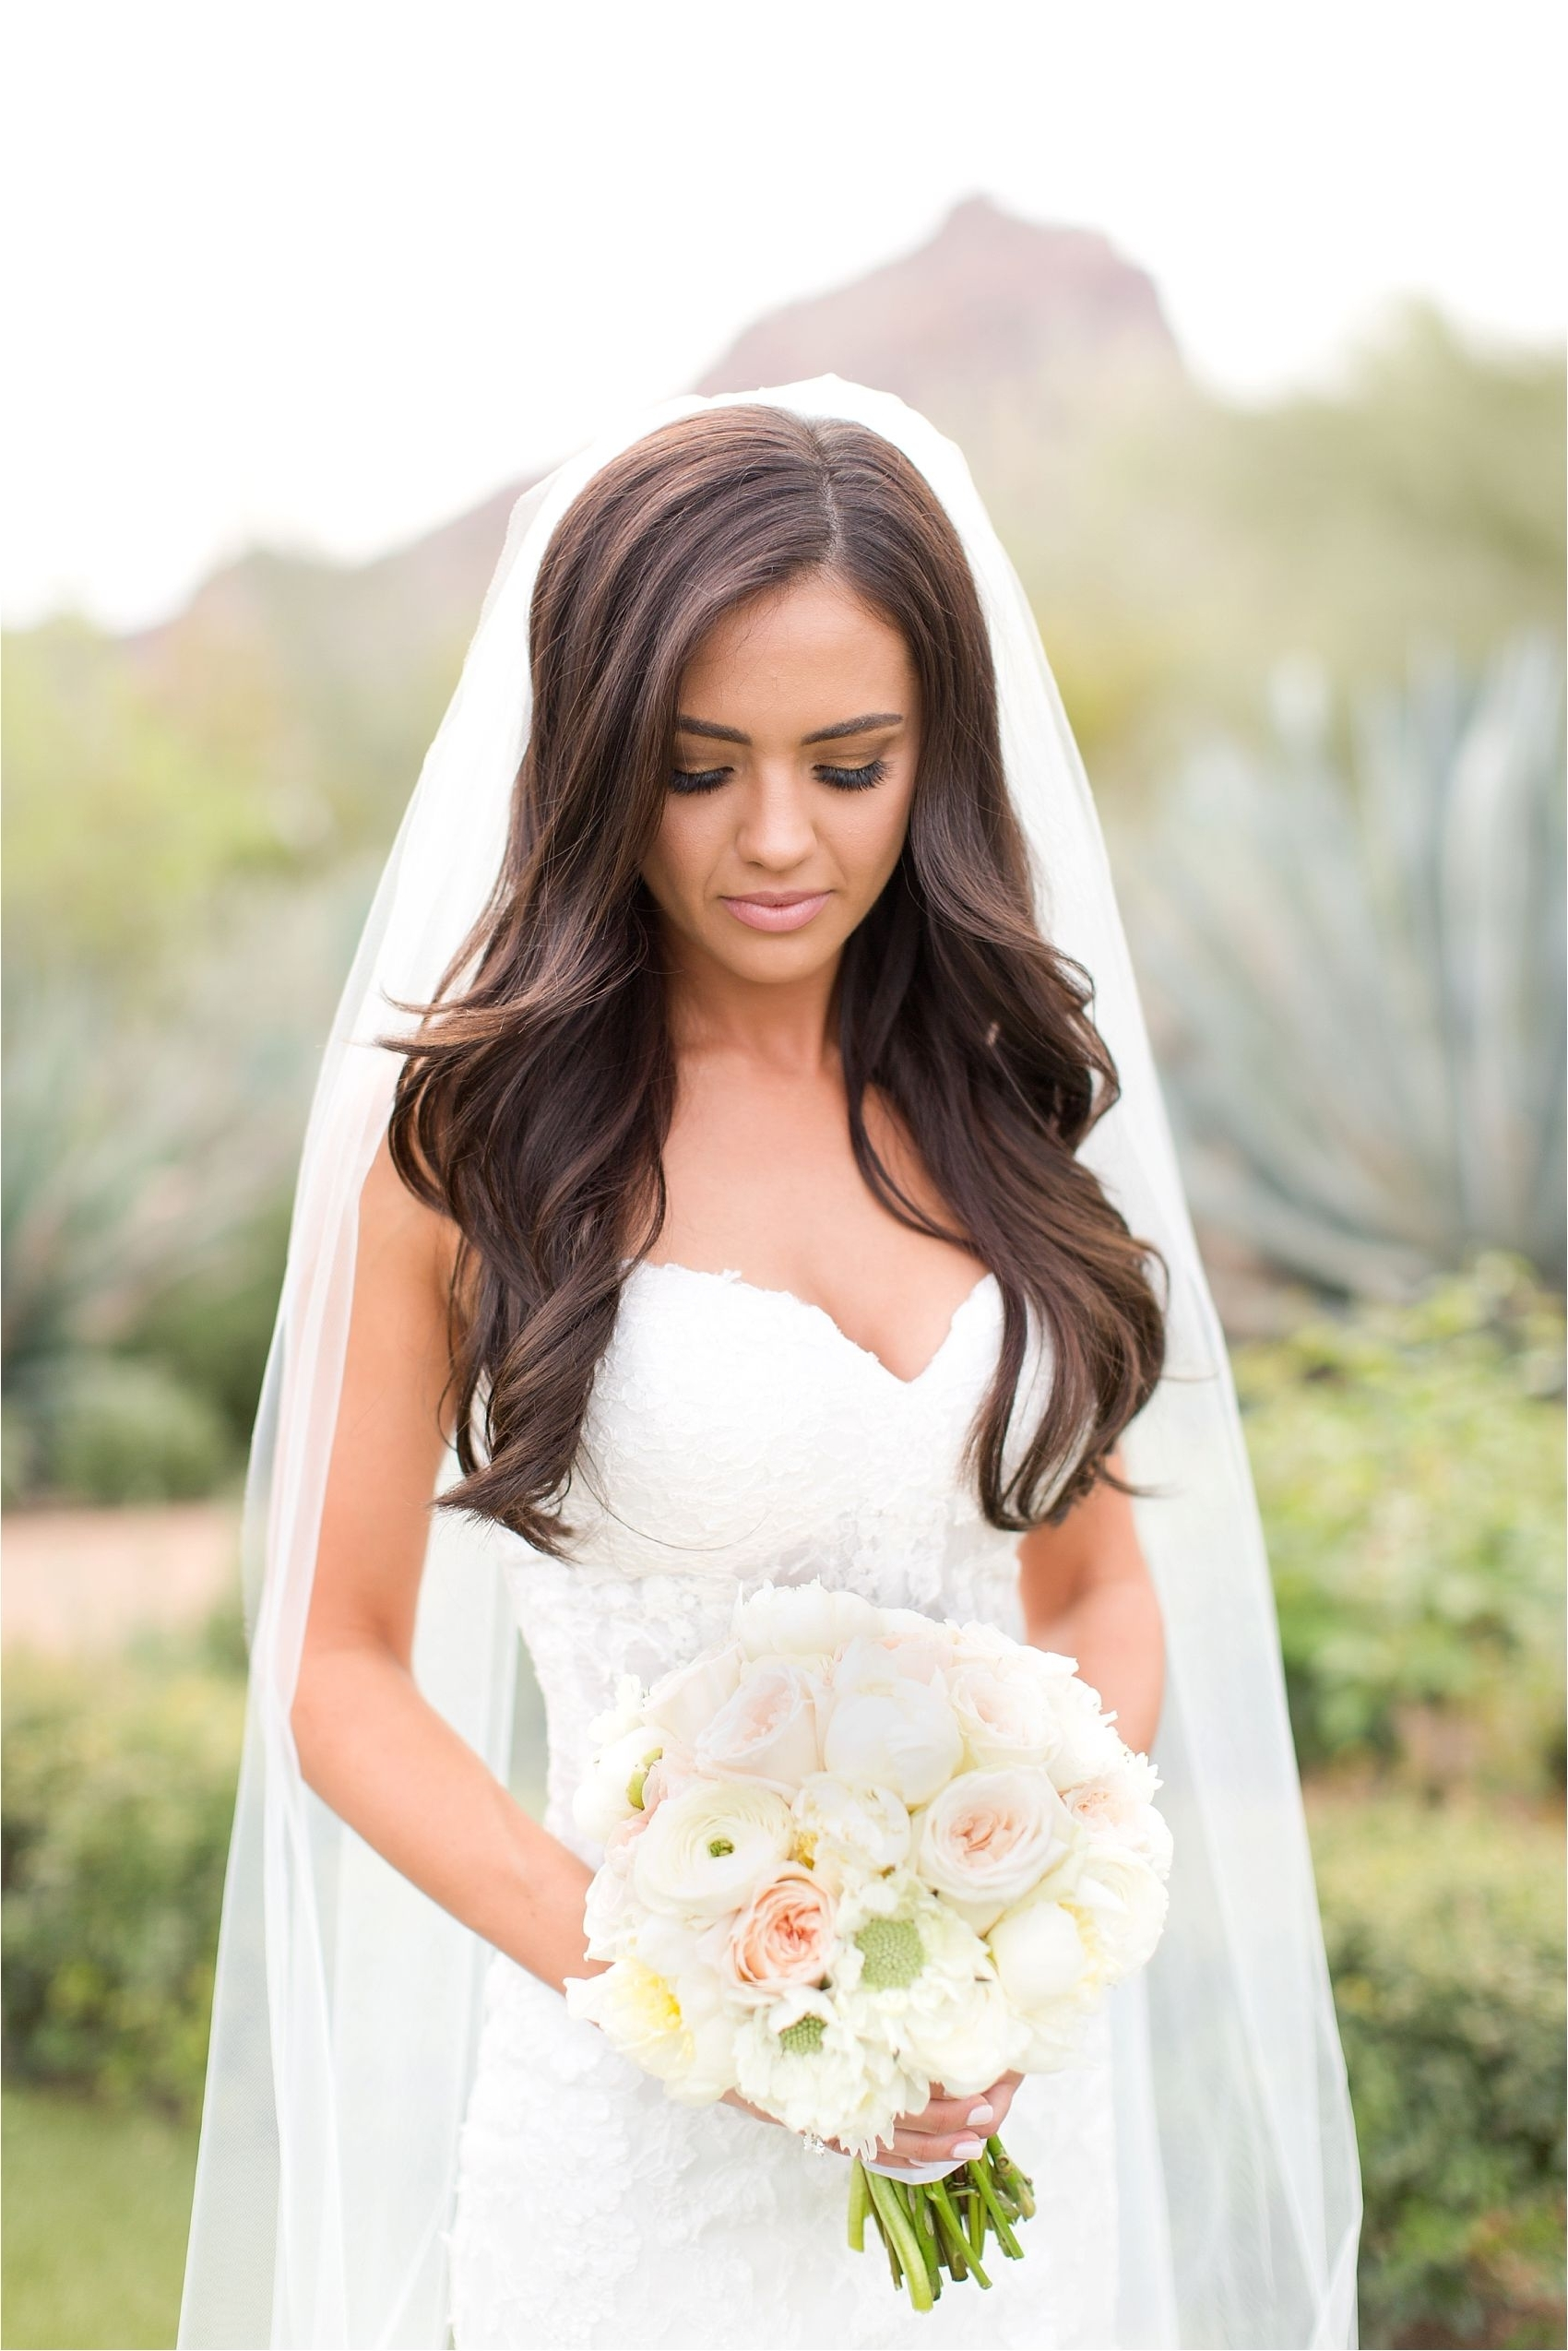 Wedding Hair : New Wedding Hairstyles With Veil Long Hair A Wedding Within Best And Newest Wedding Hairstyles For Long Straight Hair With Veil (View 12 of 15)